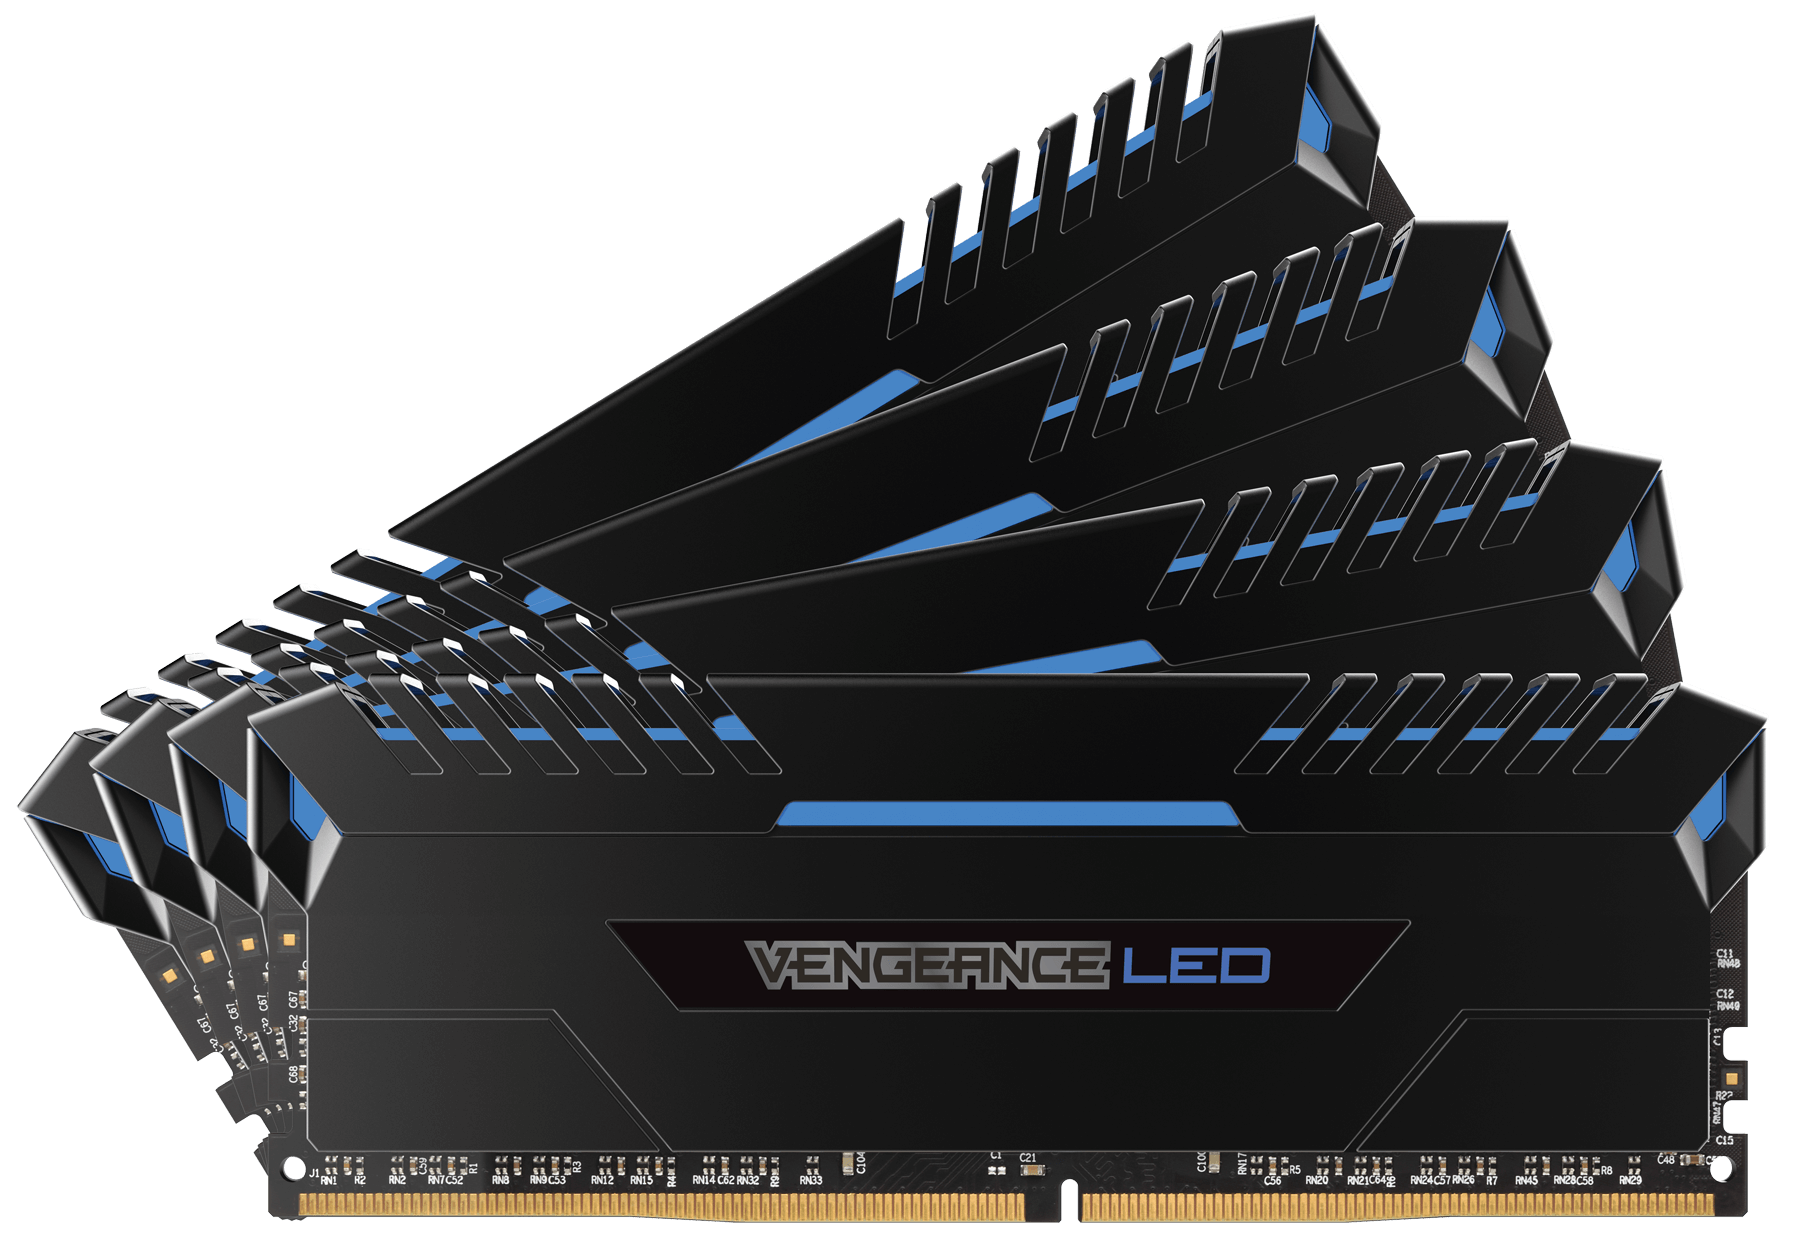 Memorie Desktop Corsair Vengeance LED 32GB (4x8GB) DDR4 3000MHz Blue